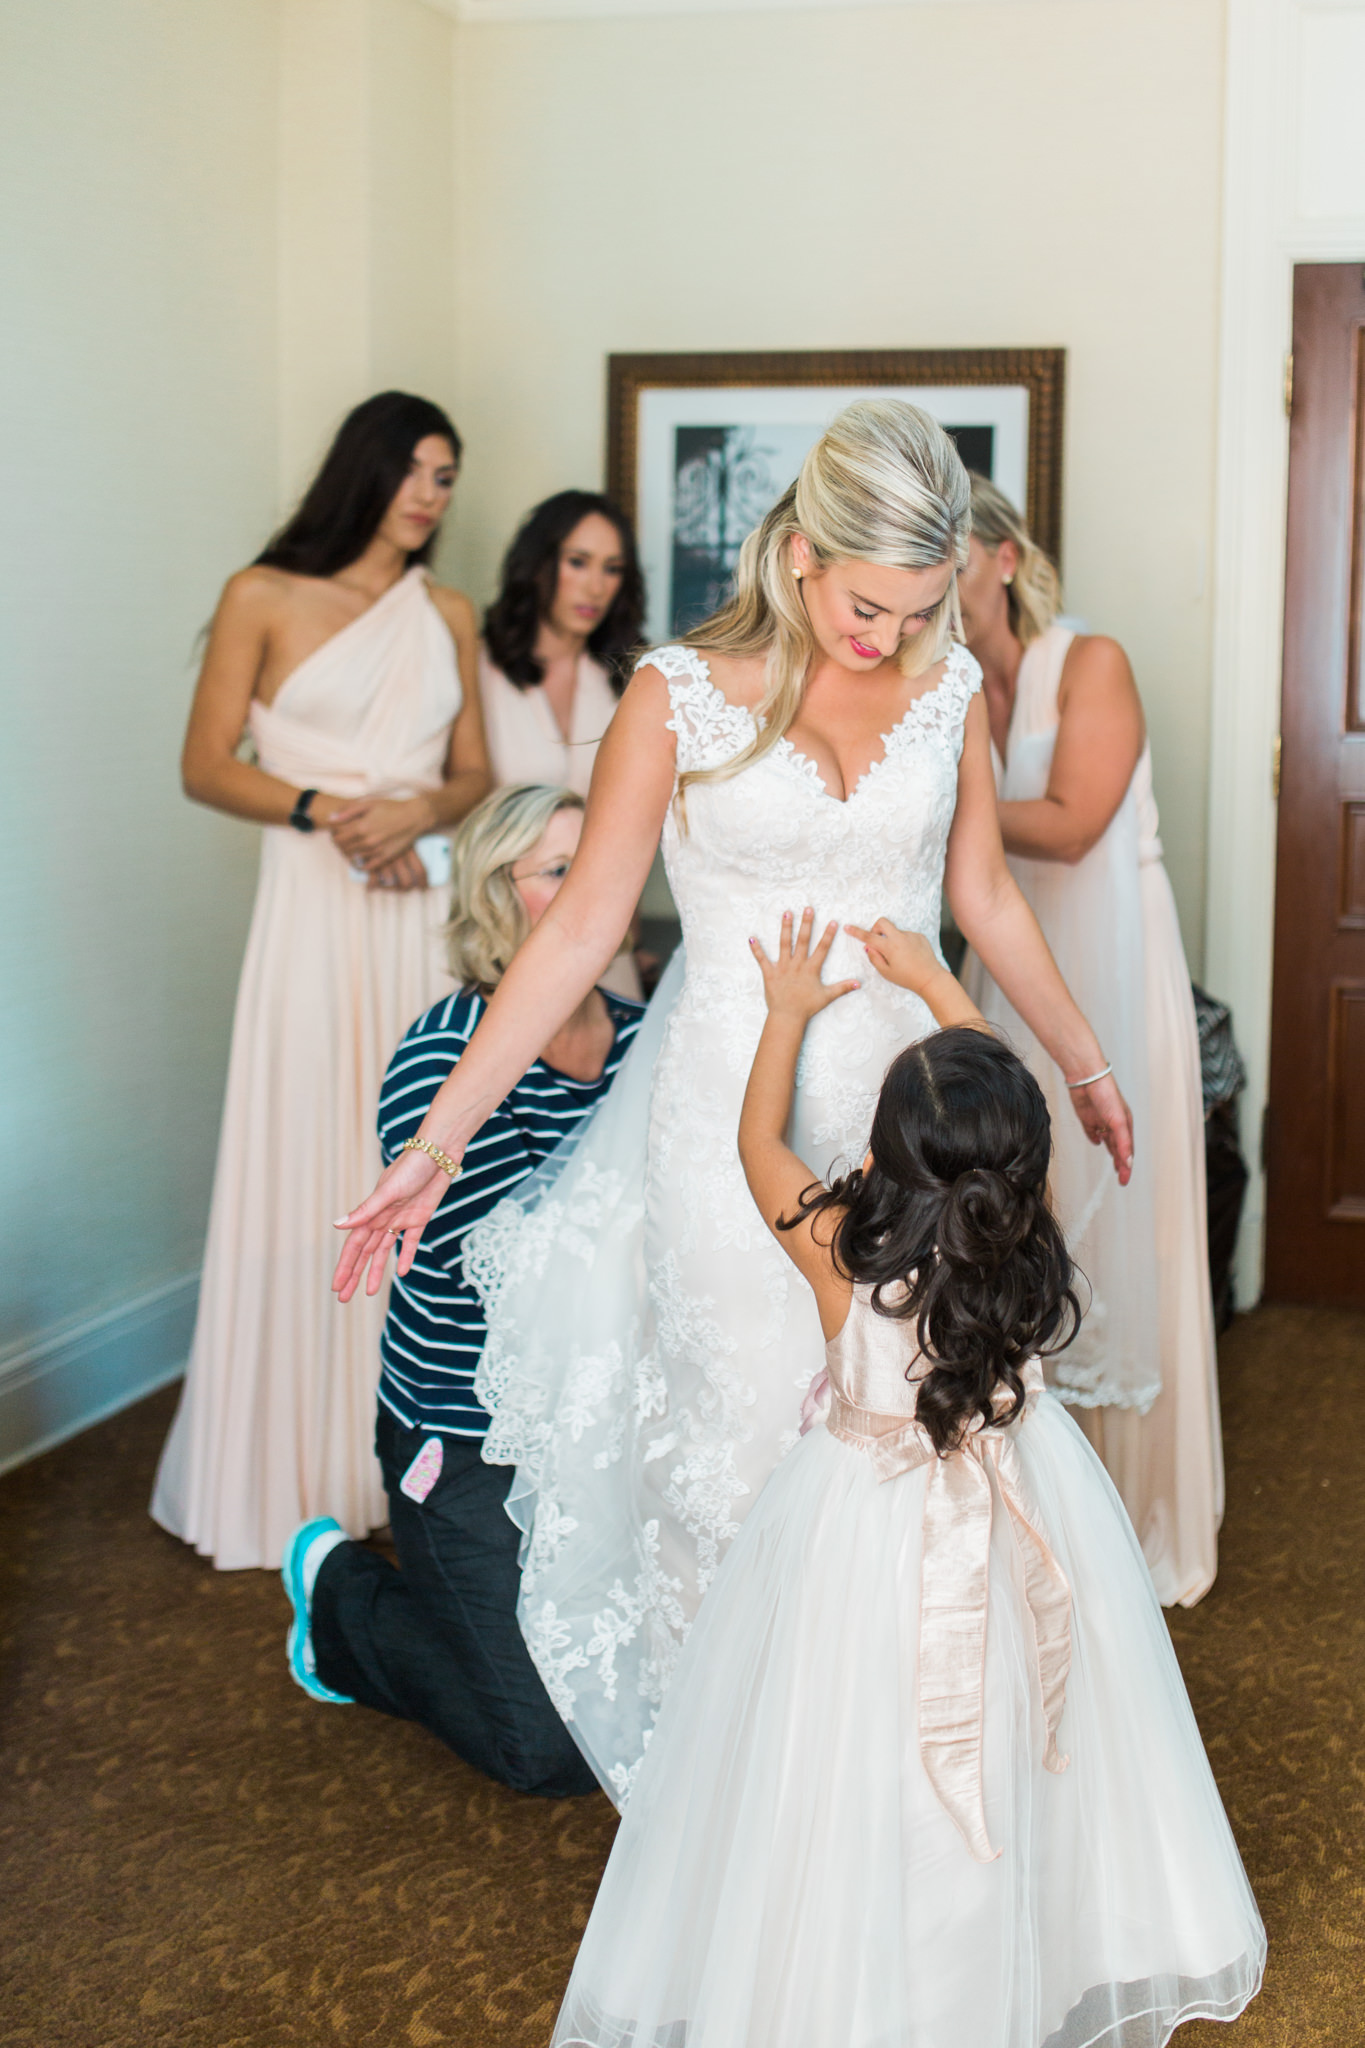 Bride and little sister playing while getting ready